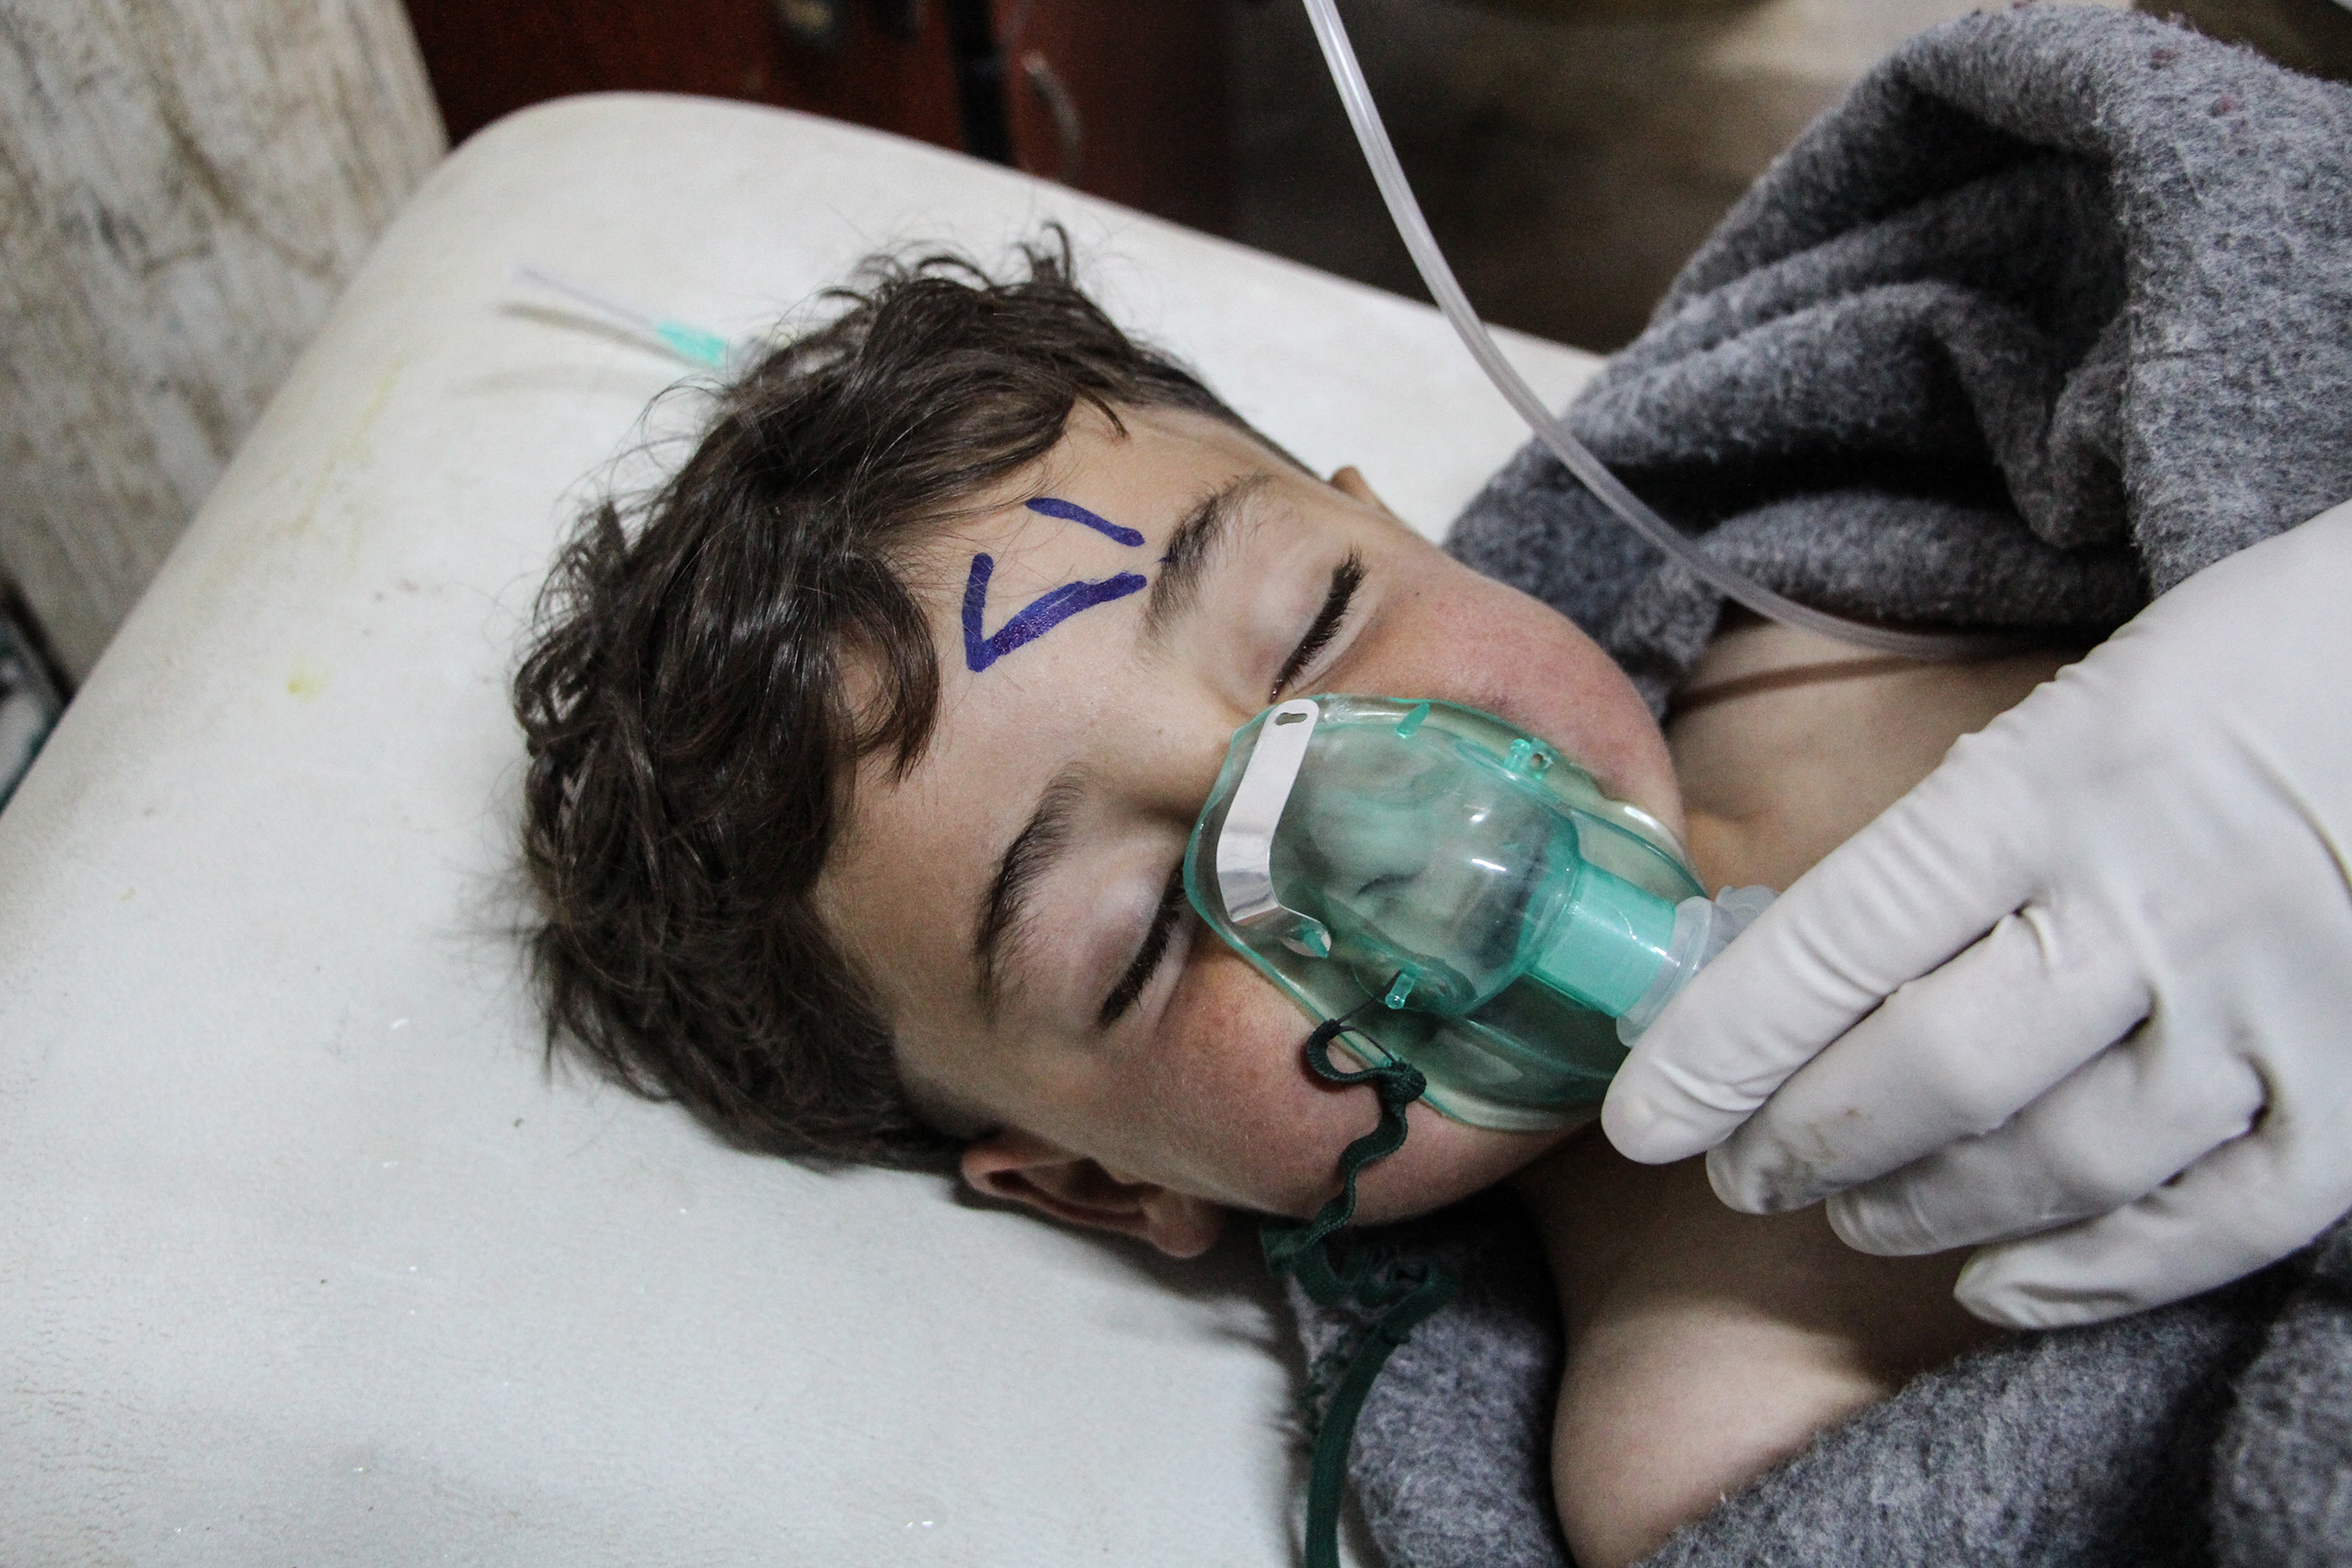 A child receives care after an attack at a field hospital in Saraqib, Idlib province, Syria, on April 4, 2017.